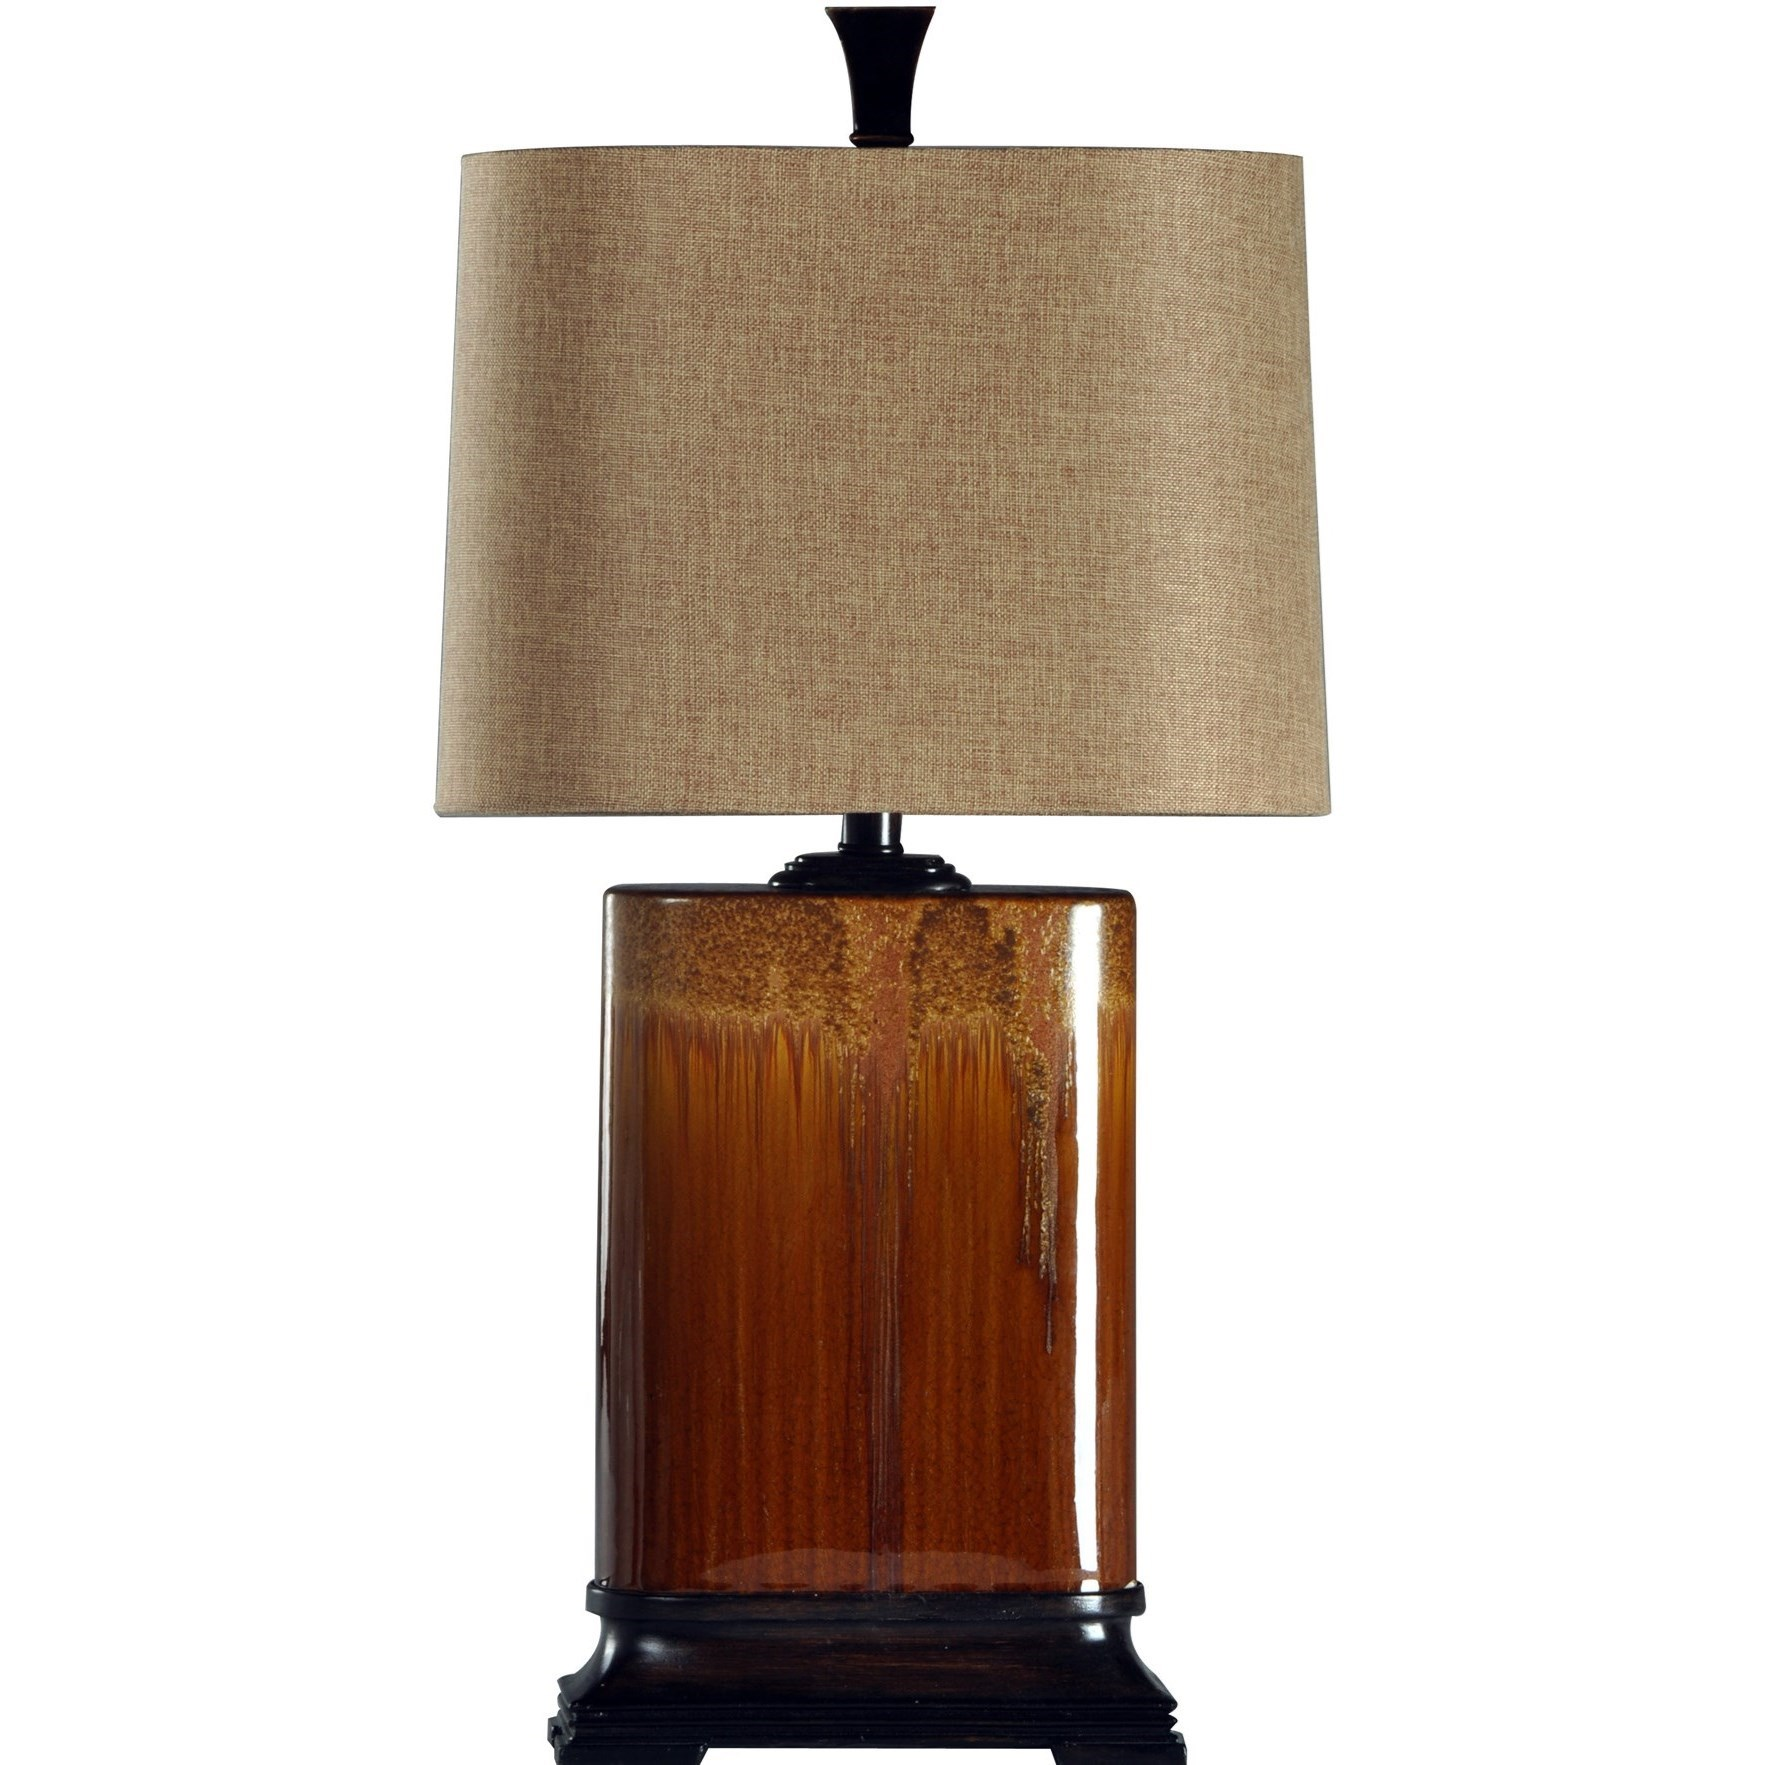 Lamps Rectangular Table Lamp by StyleCraft at Alison Craig Home Furnishings